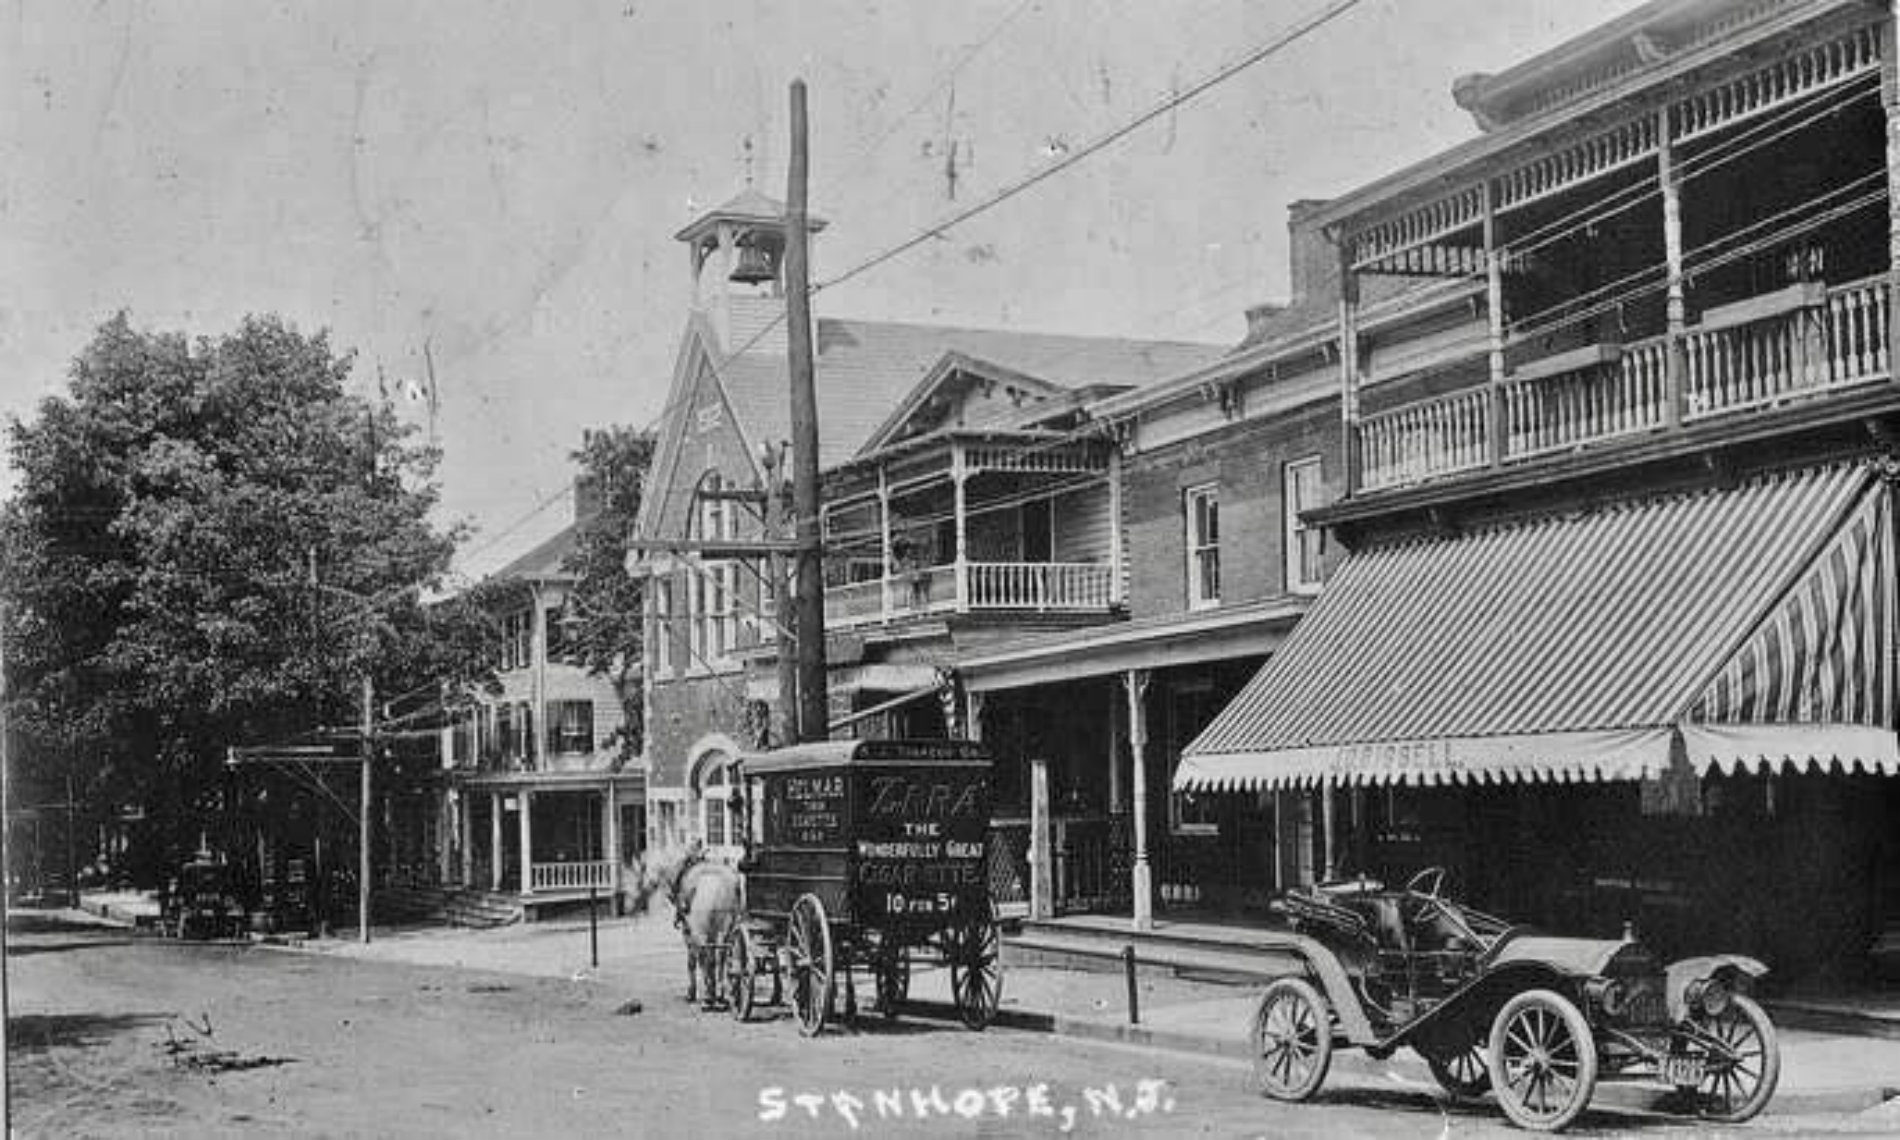 Black and white street scene of the town